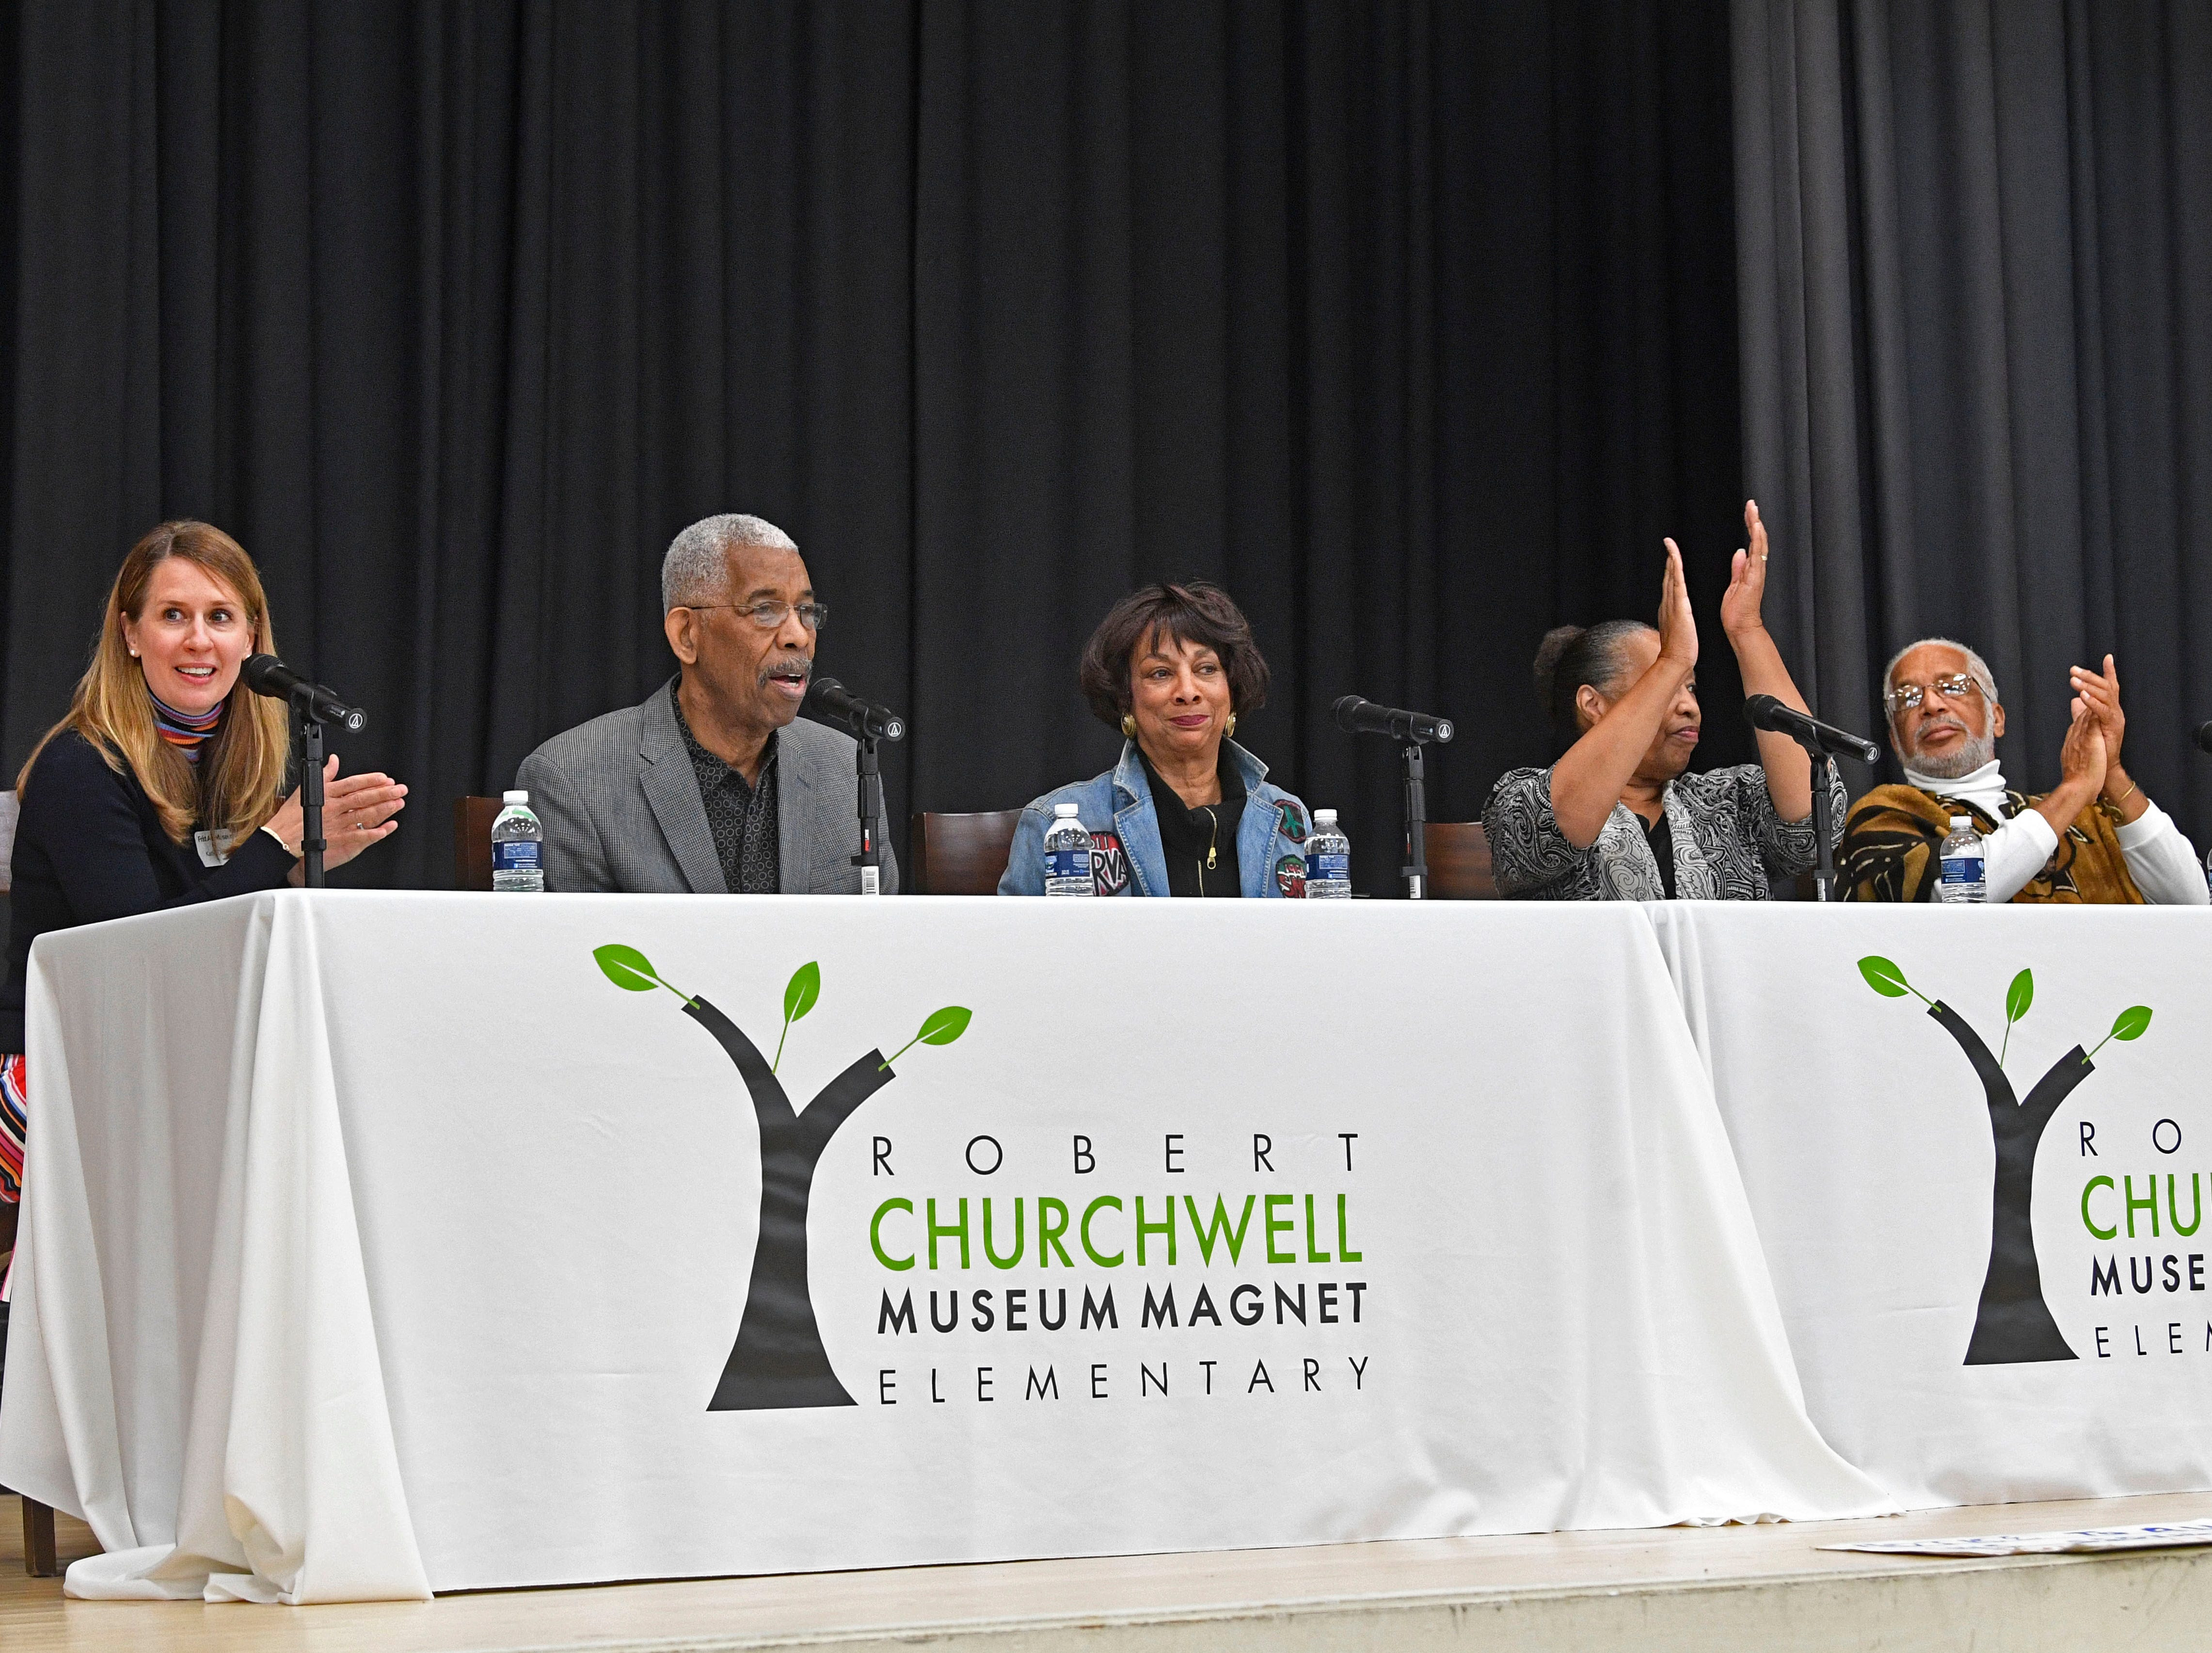 A significant part of We Shall Overcome exhibition will be presented at the Robert Churchwell Museum Magnet School beginning November 30. To celebrate its opening, the school hosted an assembly that featured remarks by the principal and a conversation with several participants, including Lajuanda Street Harley, Kwame Lillard, Rip Patton, and Gloria McKissack.